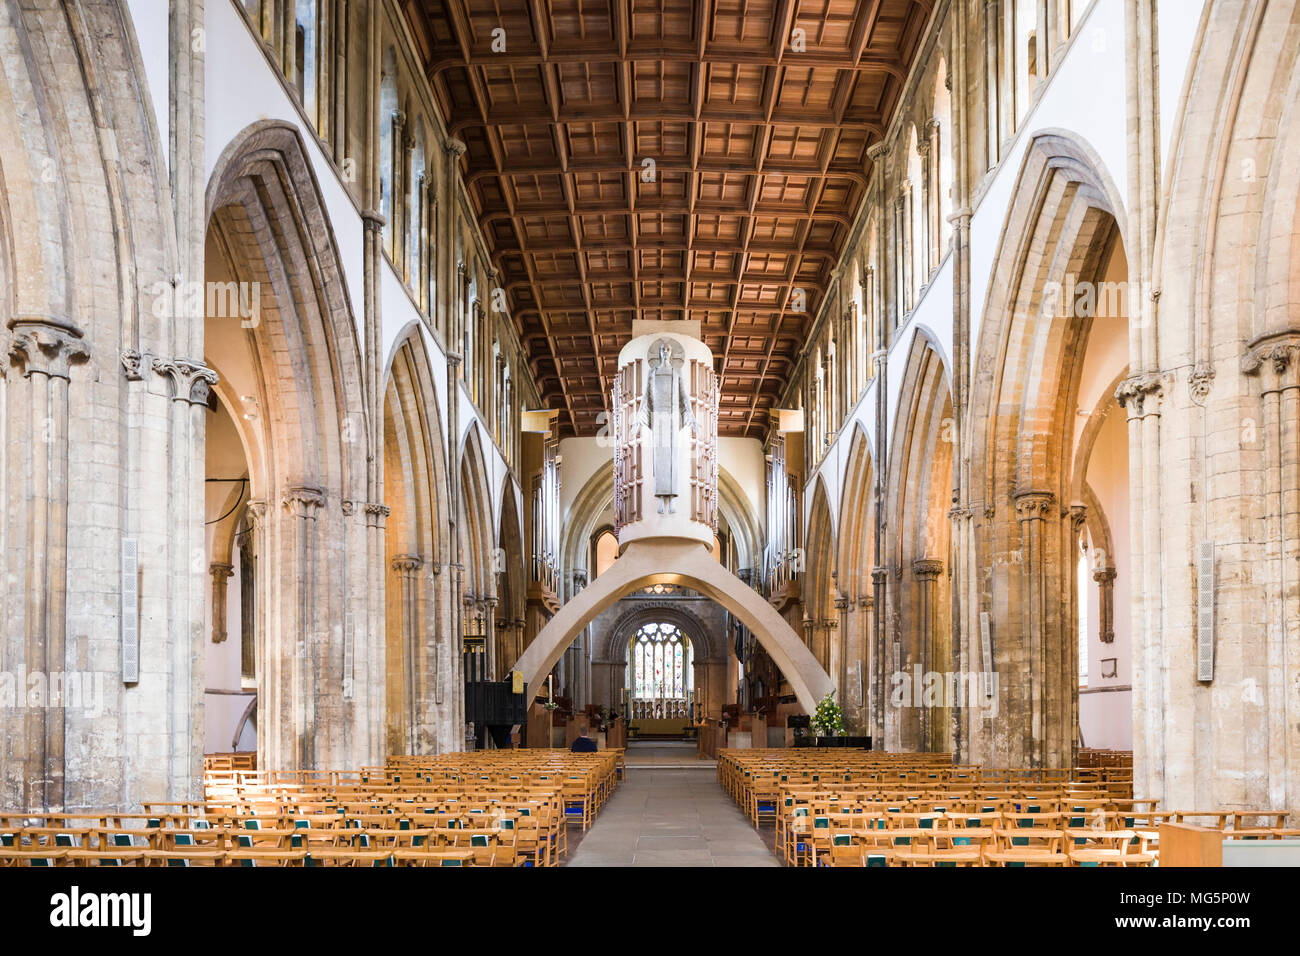 The nave of Llandaff Cathedral / Eglwys Gadeiriol Llandaf, Cardiff, a medieval church restored after WWII by George Pace; sculpture by Jacob Epstein. - Stock Image